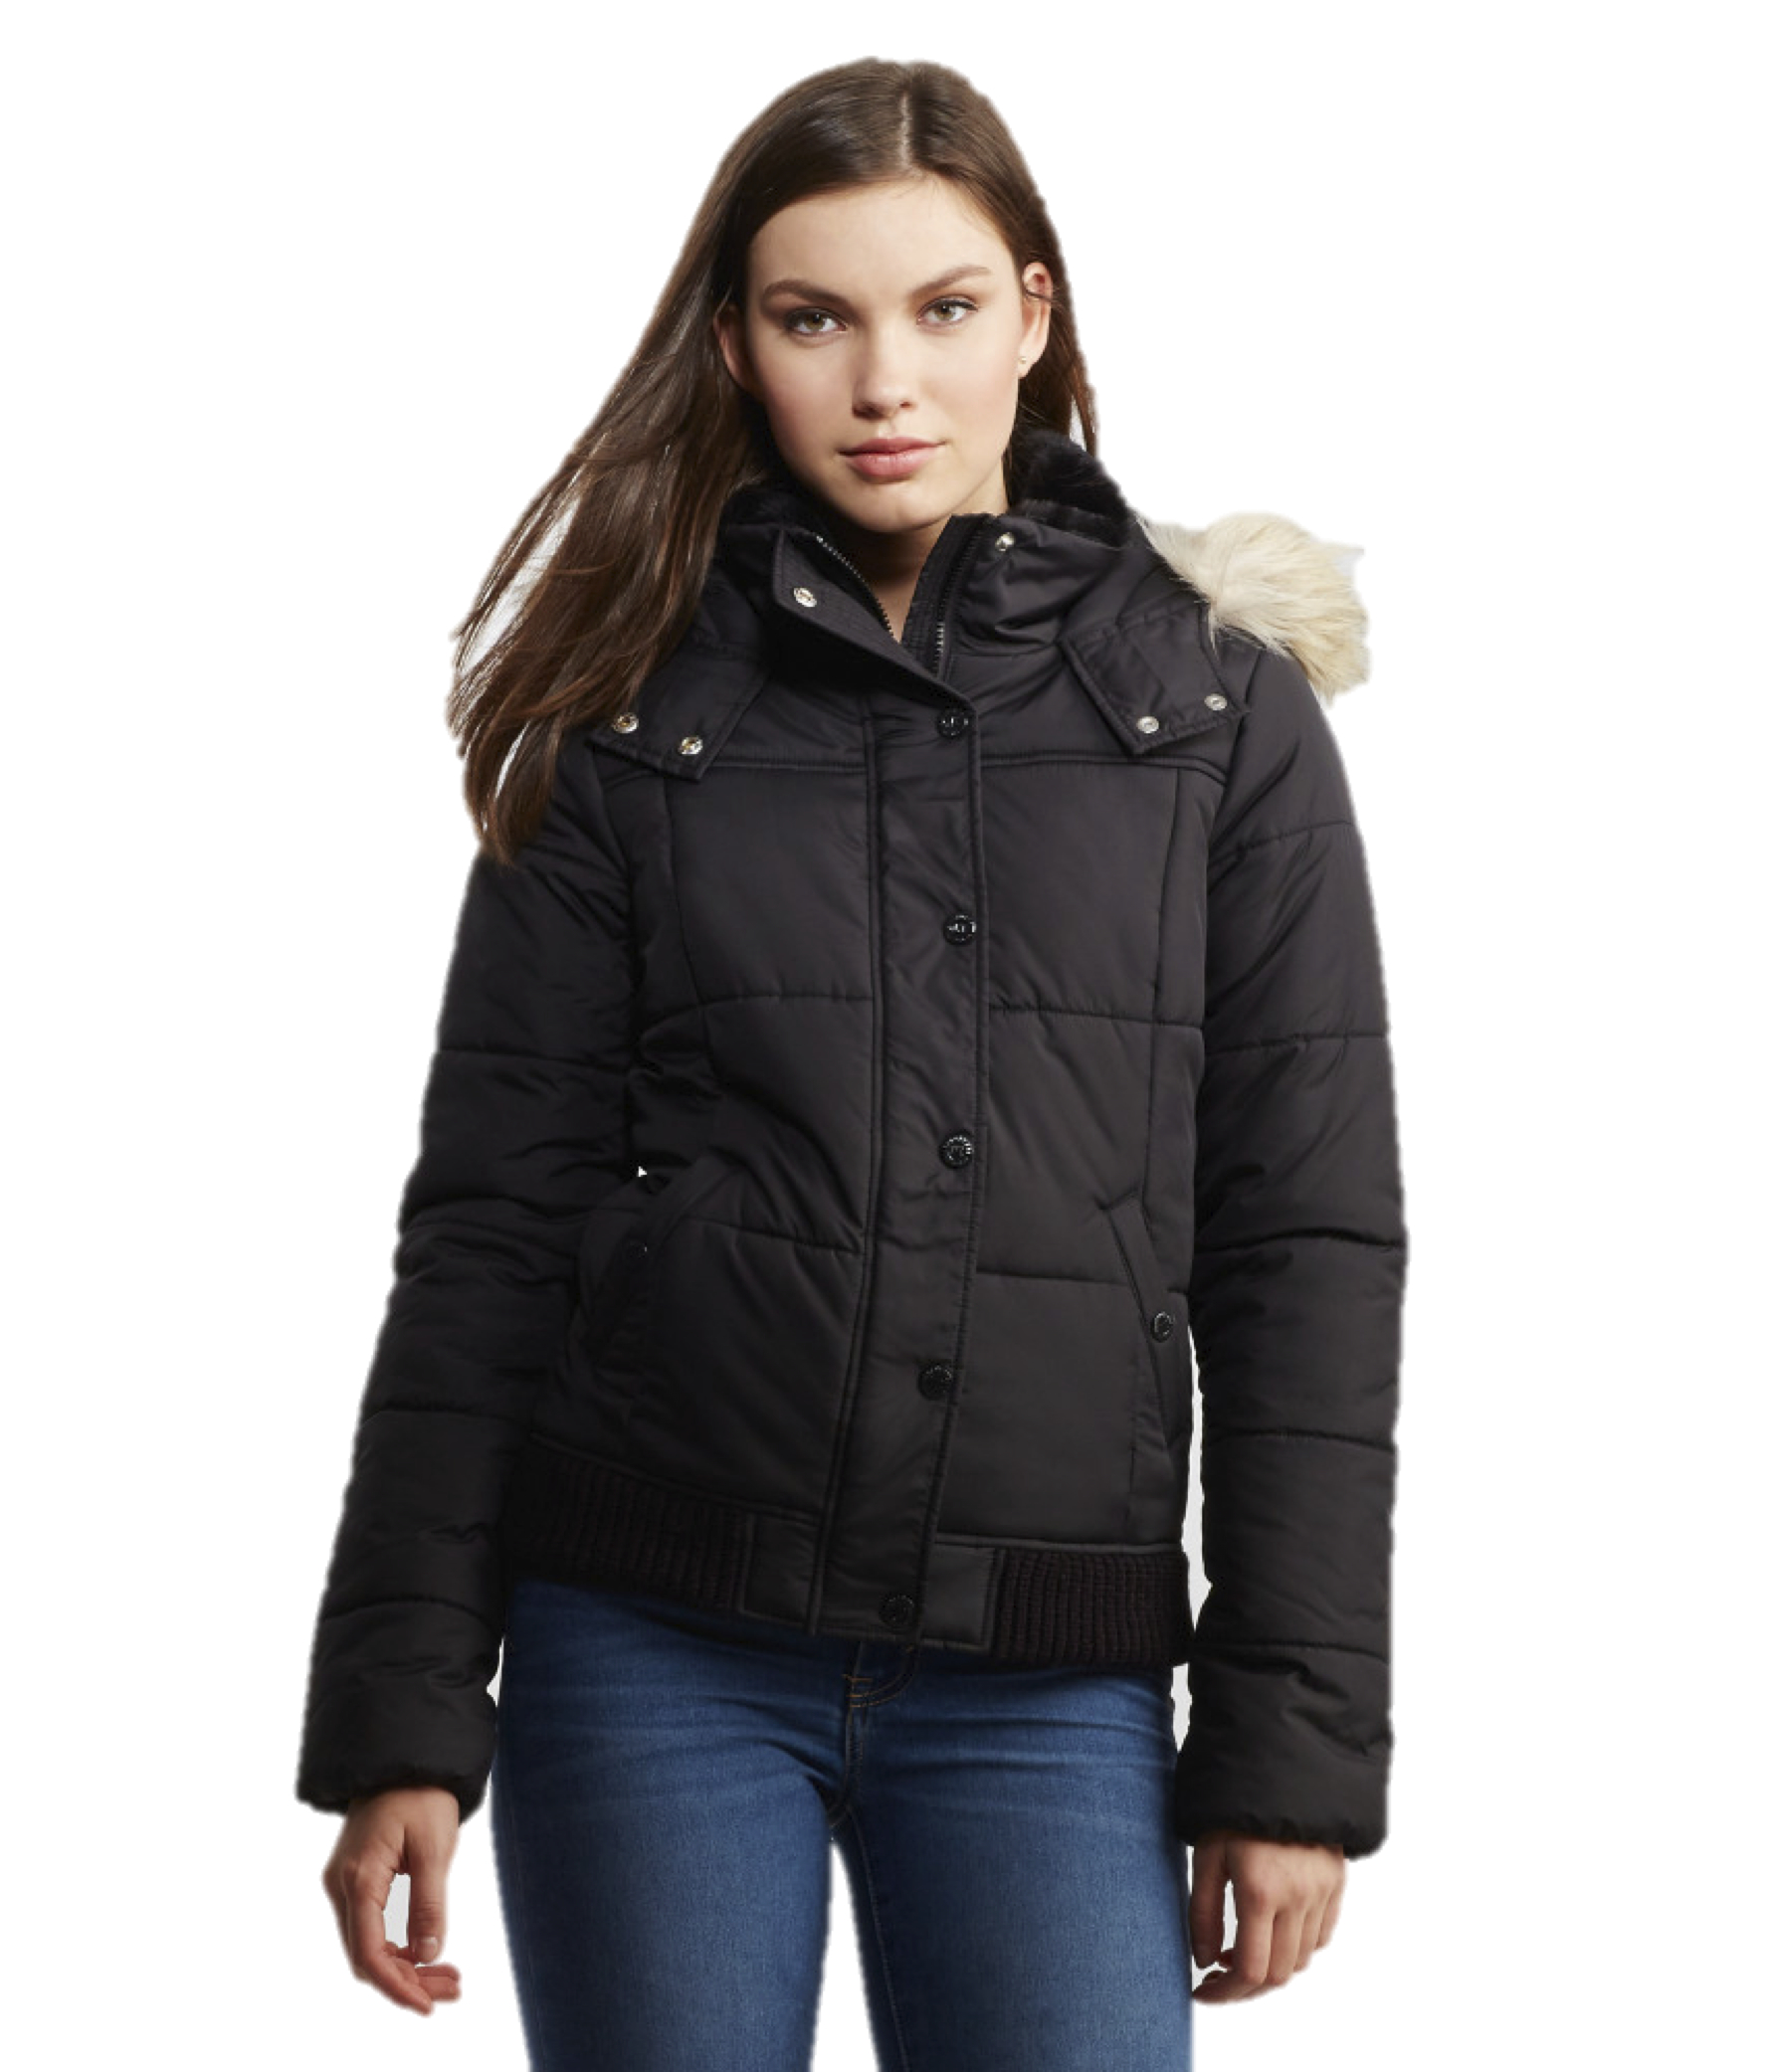 Puffy jackets for women